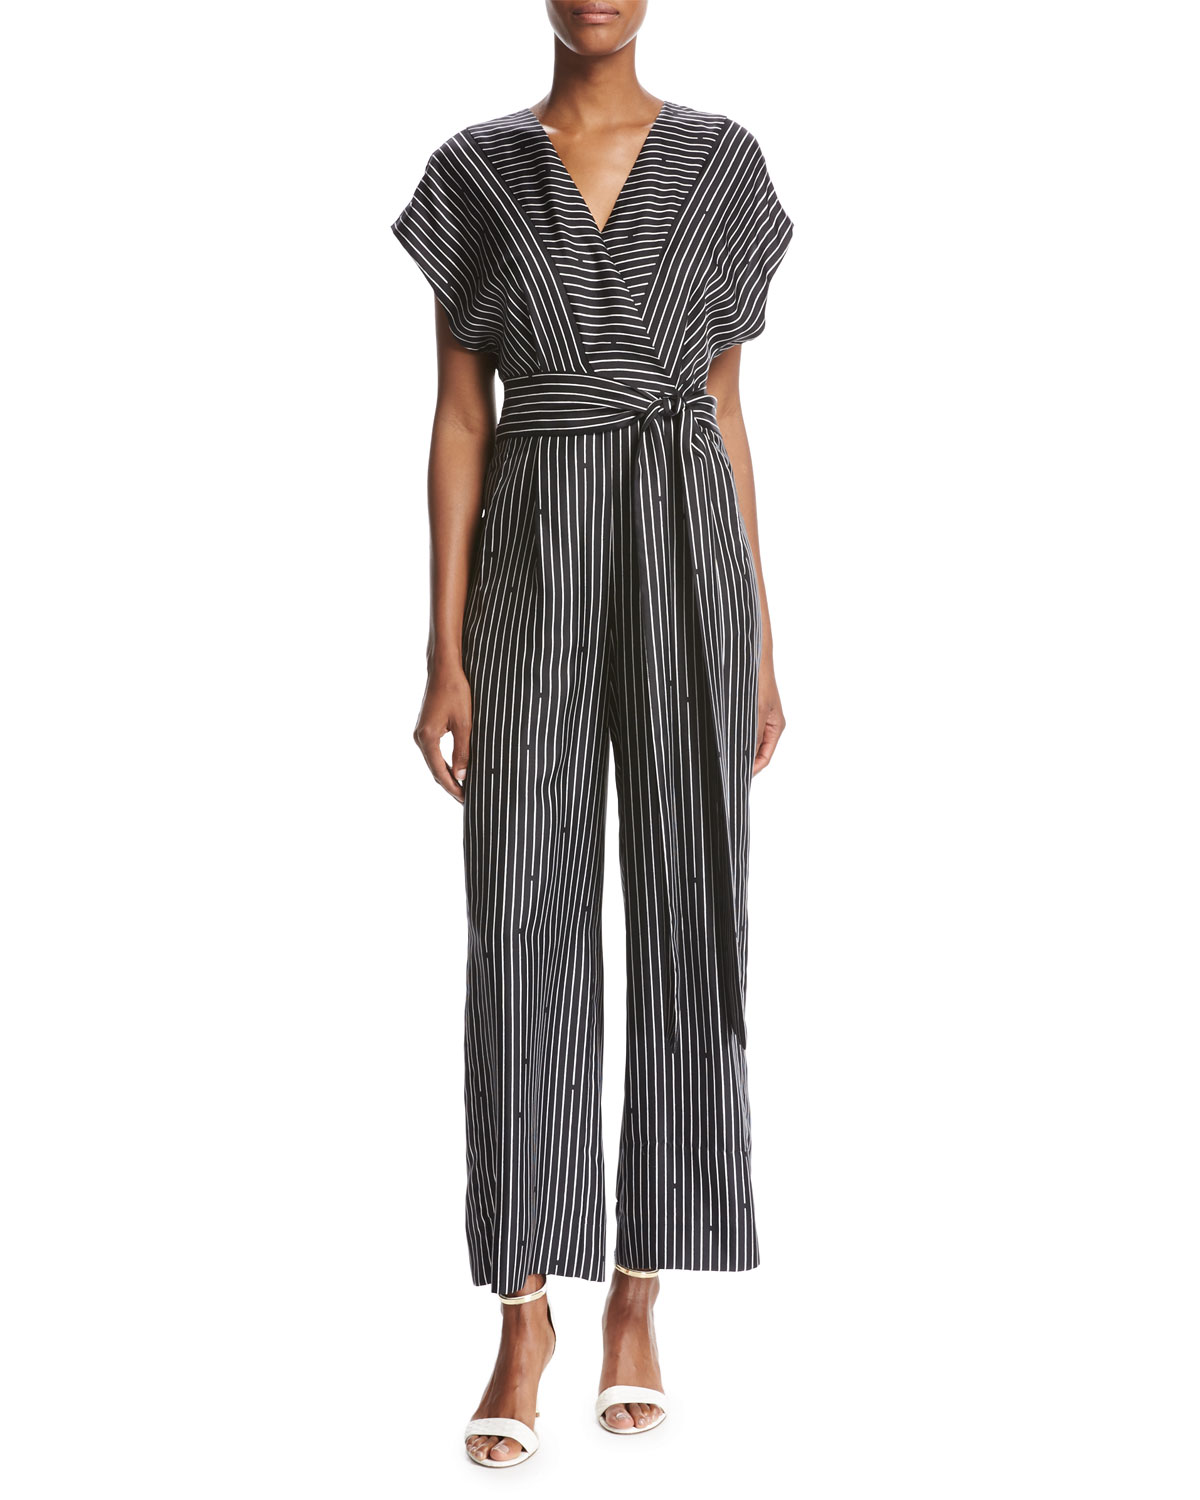 79dd453a9113 Diane von Furstenberg Short-Sleeve V-Neck Striped Silk Jumpsuit ...